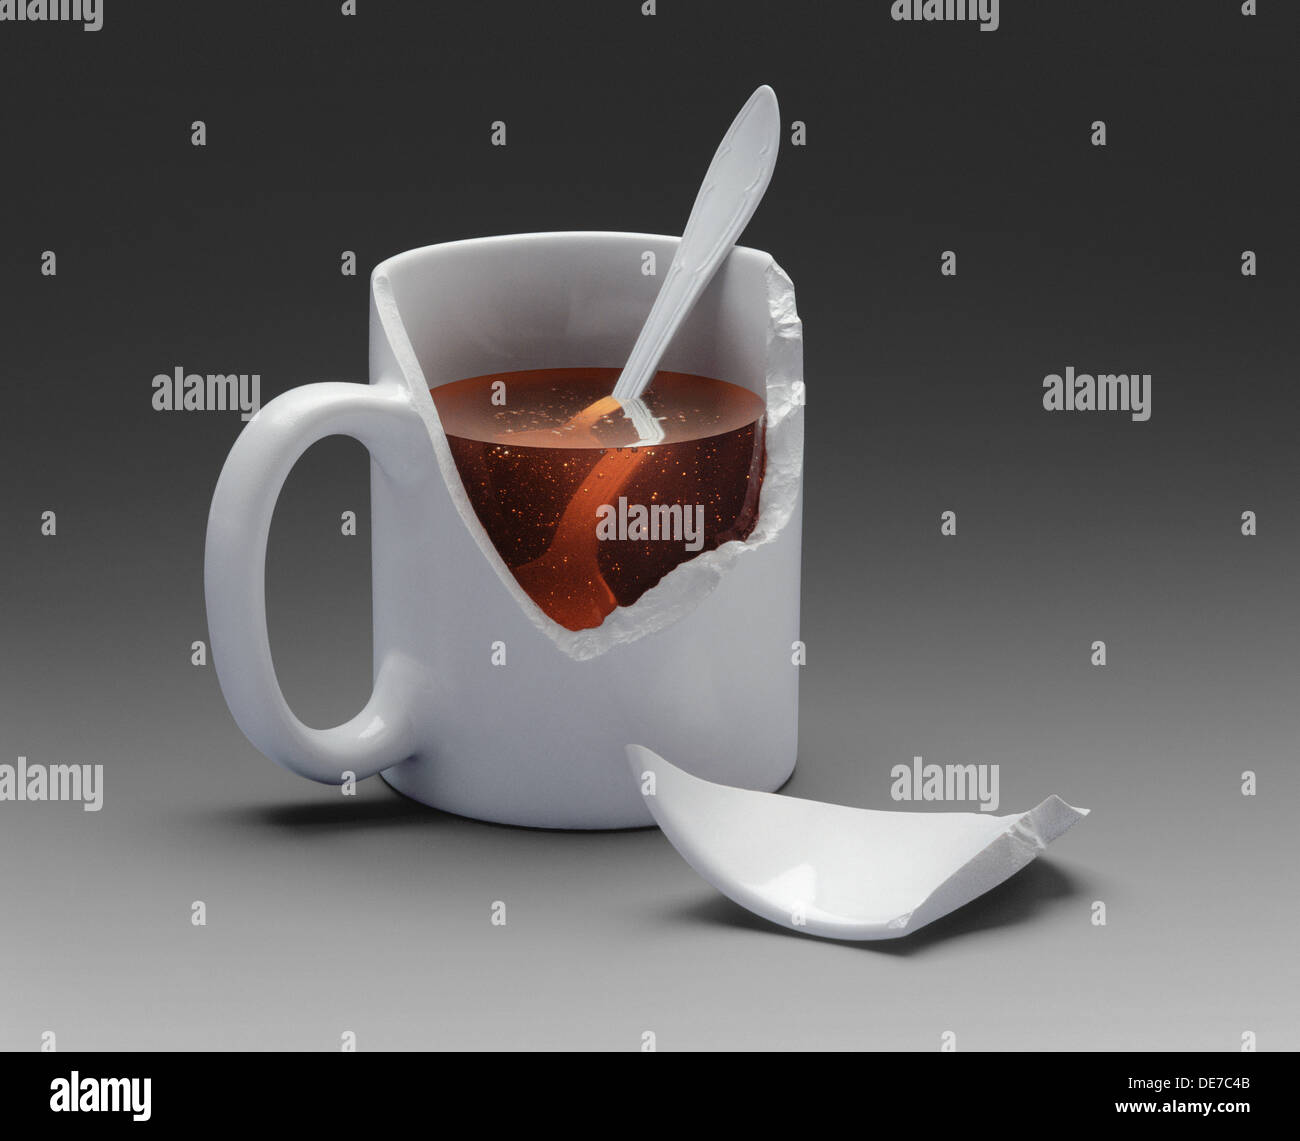 White cup with a broken part showing the liquid content inside - Stock Image